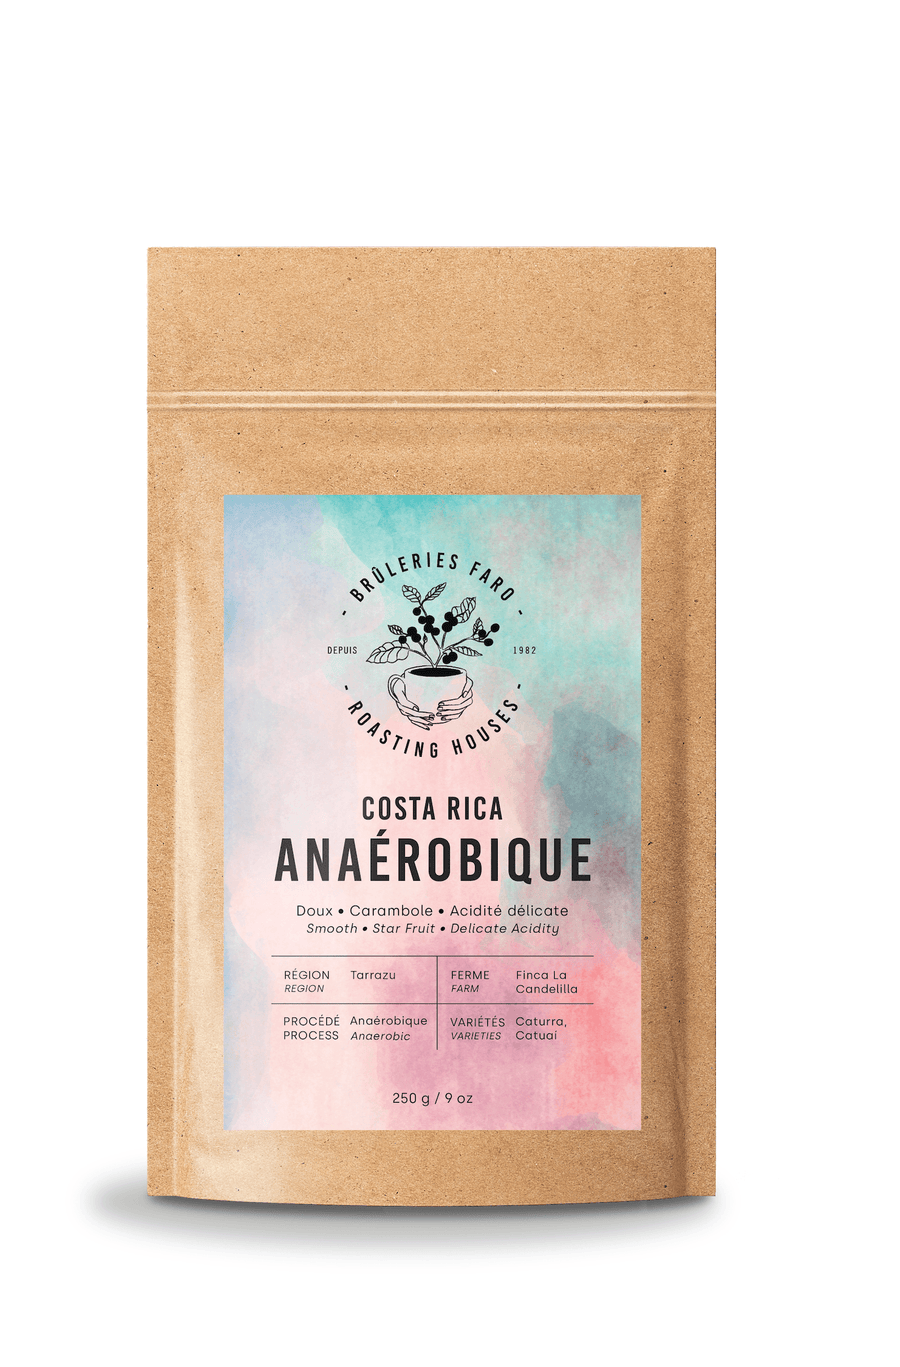 LIMITED EDITION COSTA RICA ANAEROBIC (250G) Coffee